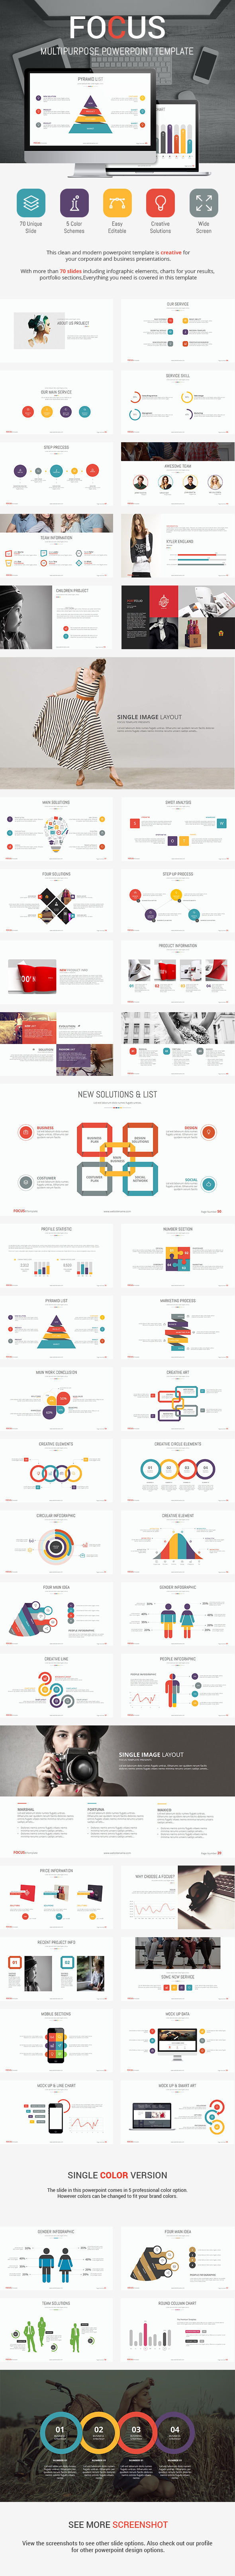 Focus - Presentation Template - Business PowerPoint Templates